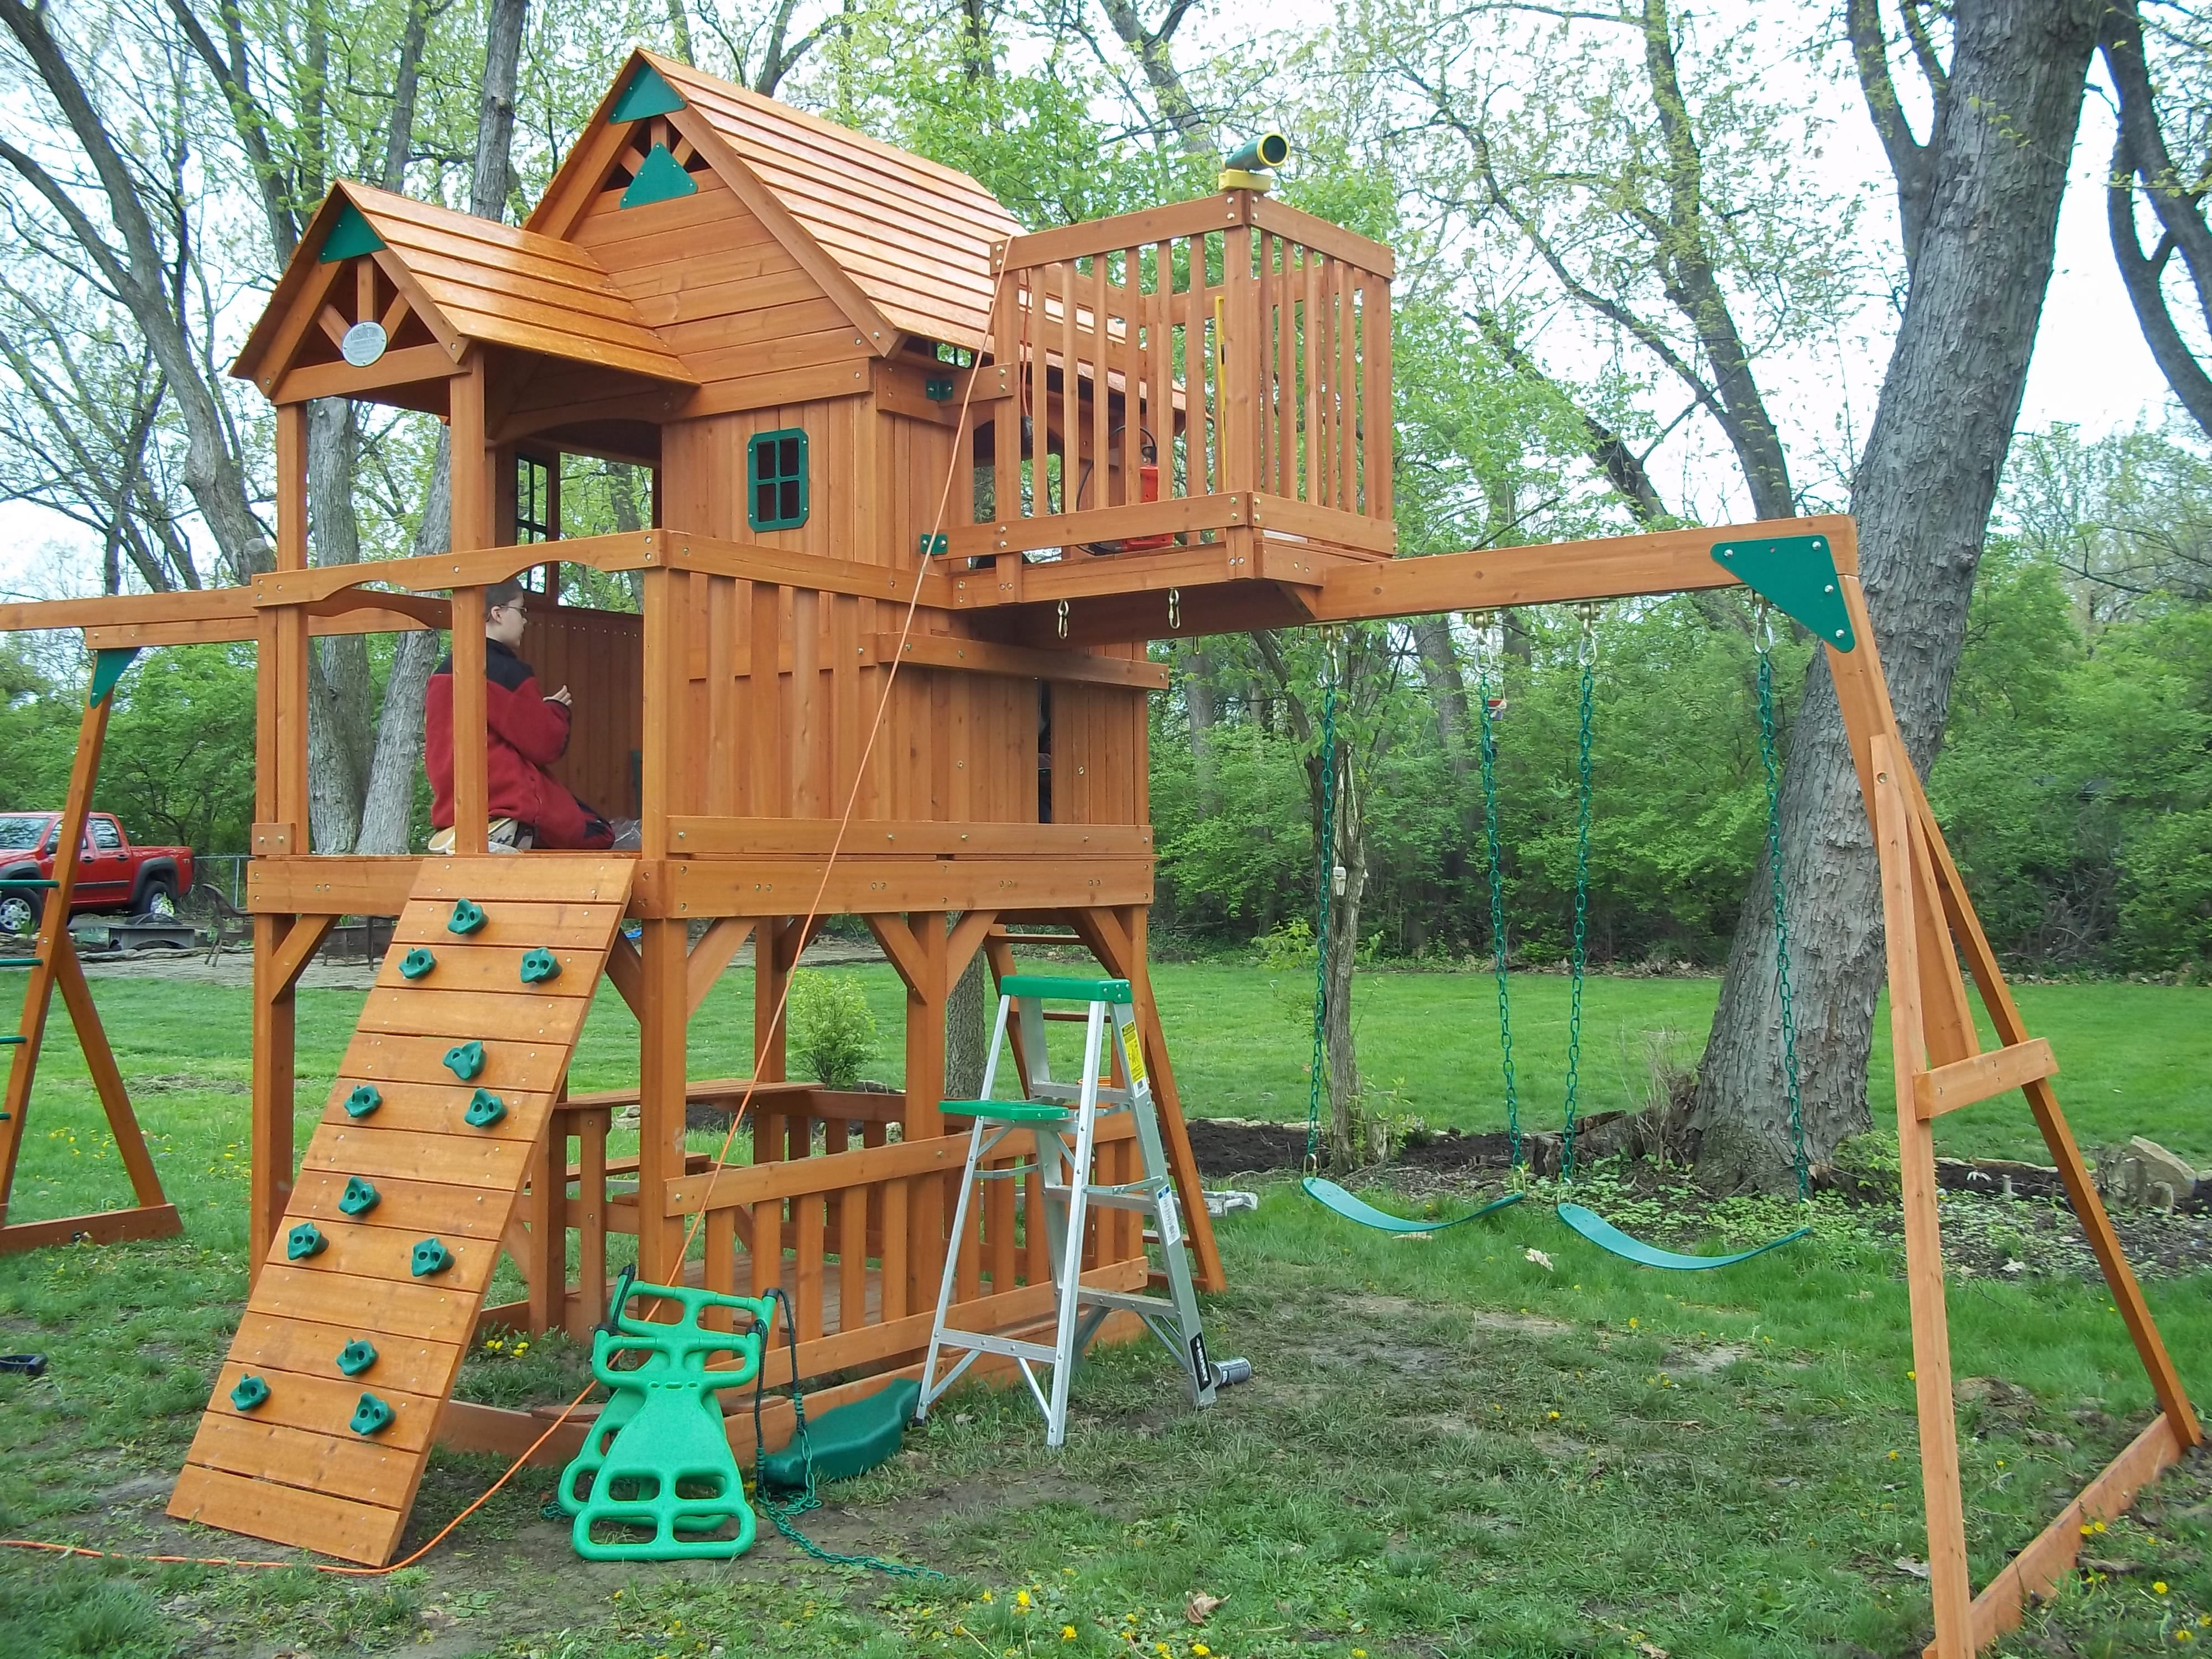 sky fort swing set Clubhouse swingset ideas Pinterest